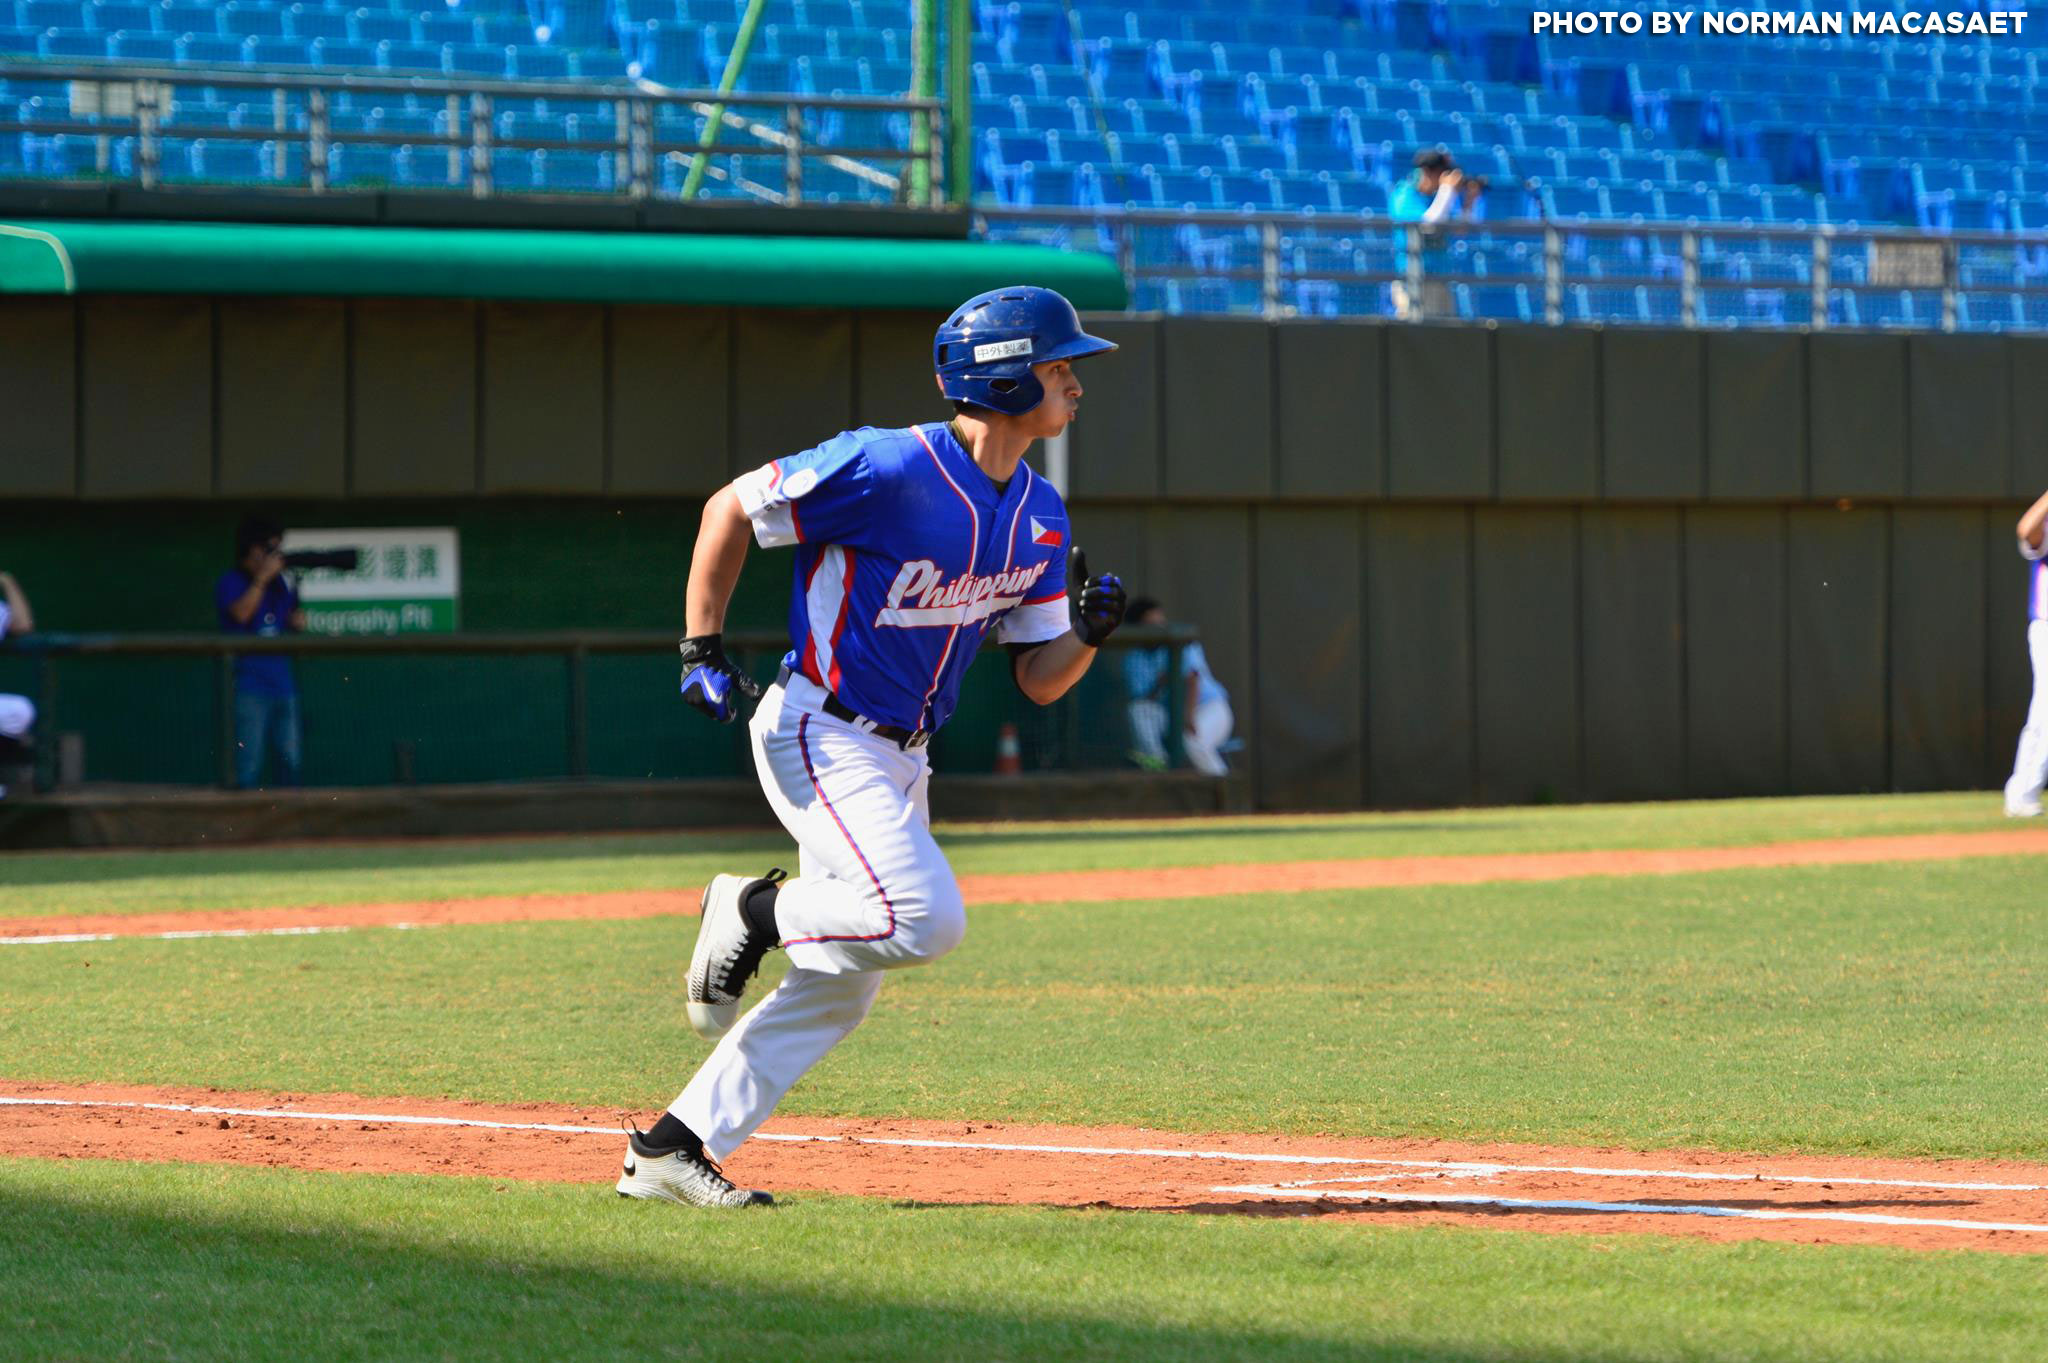 Tiebreaker Times Carlos Munoz has 4 RBI as Philippine pitchers shutout Hong Kong to advance to semis Baseball News  Jonash Ponce Jon-Jon Robles Javi Macasaet Egay delos Reyes Carlos Munoz Aids Bernardo 2017 Asian Baseball Championship